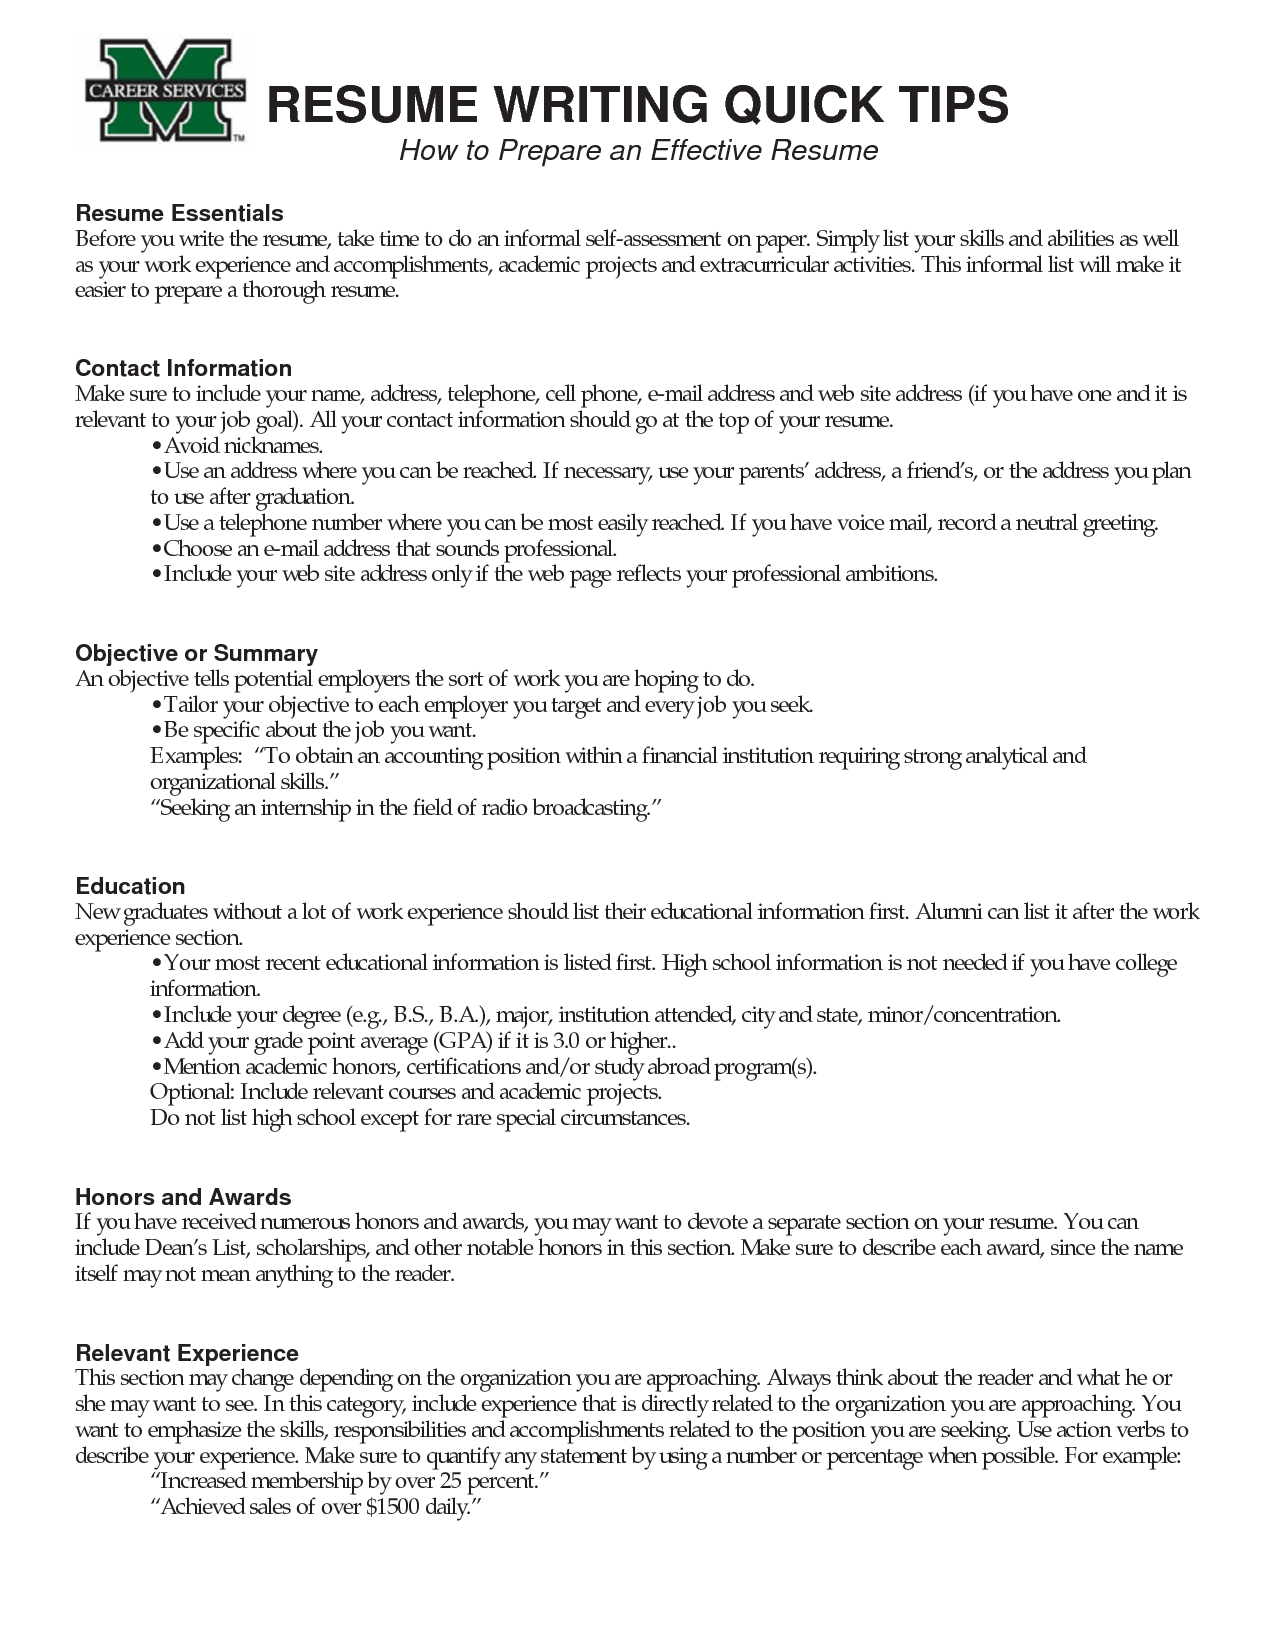 How To Make An Effective Resume Tips Effective Resume Writing Loseyourlovewriting A Resume